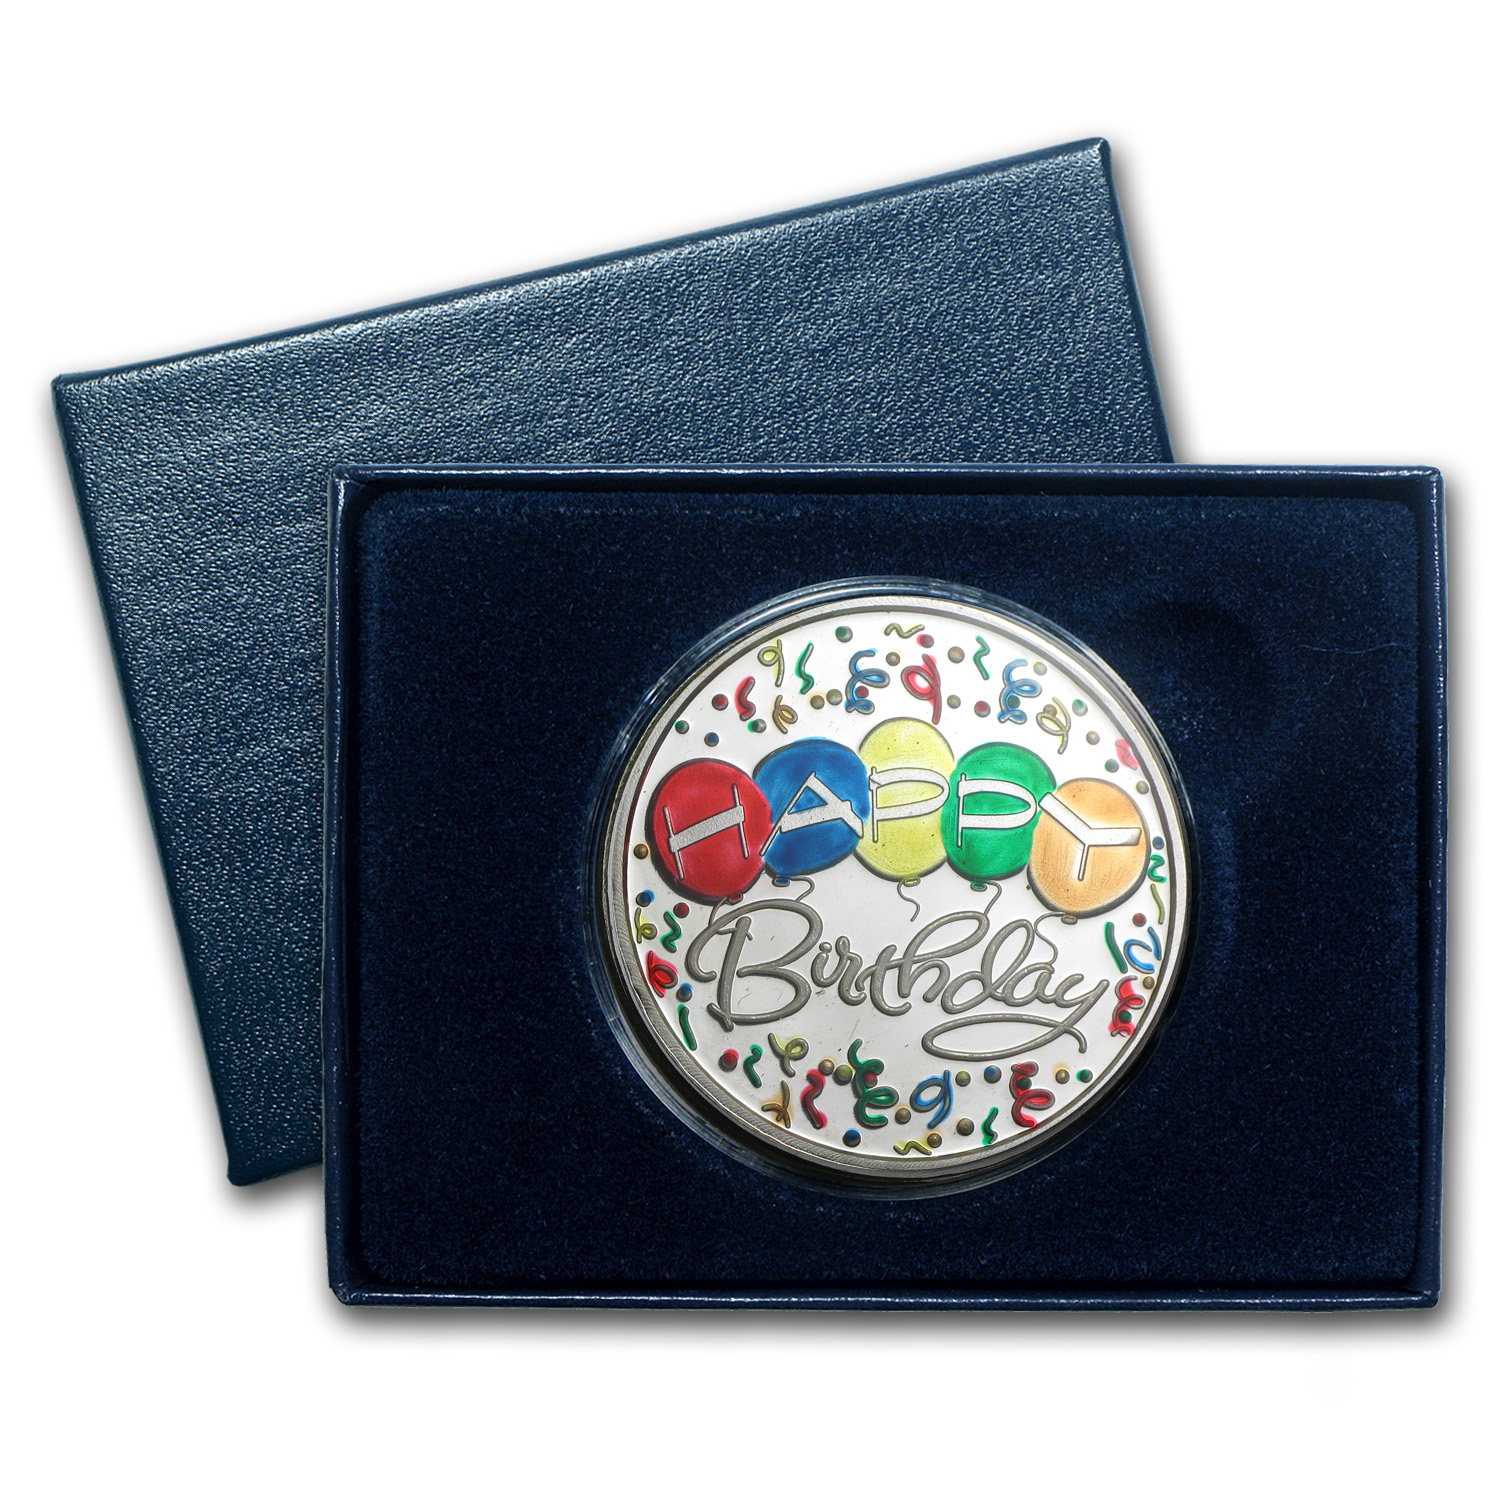 1 oz Silver Round - Happy Birthday Balloons (Enam, w/Box & Cap)